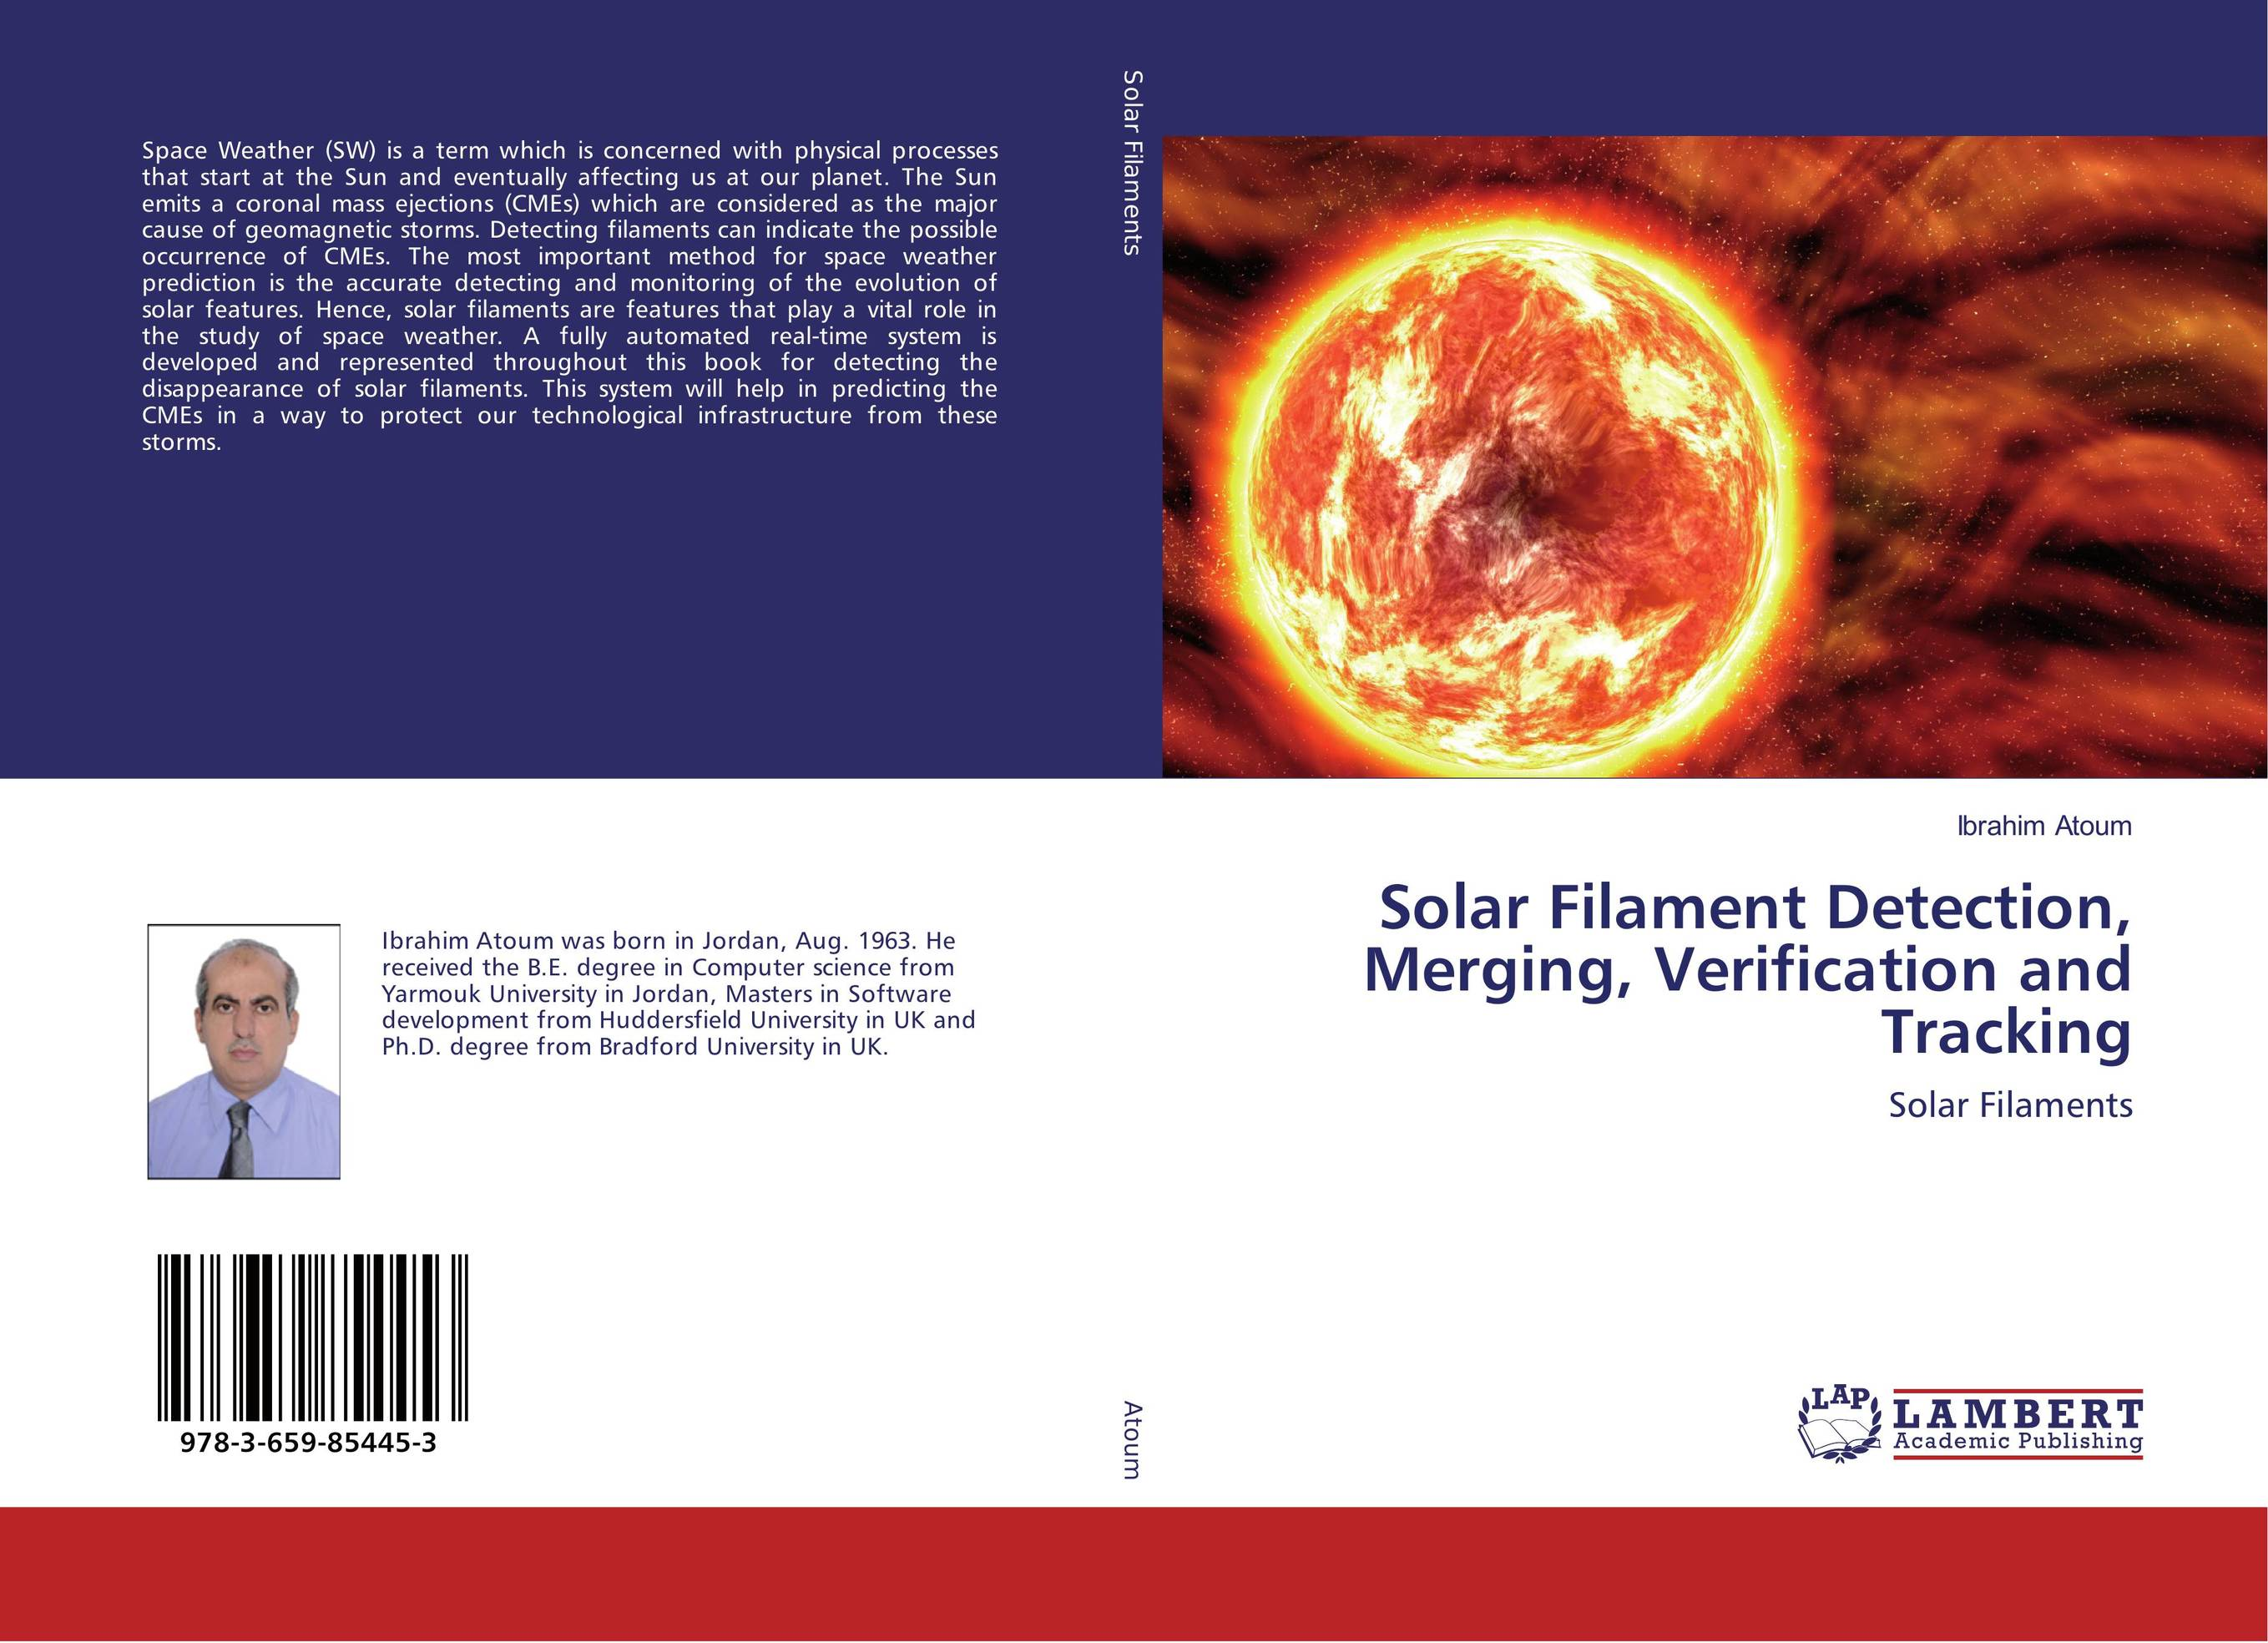 Solar Filament Detection, Merging, Verification and Tracking